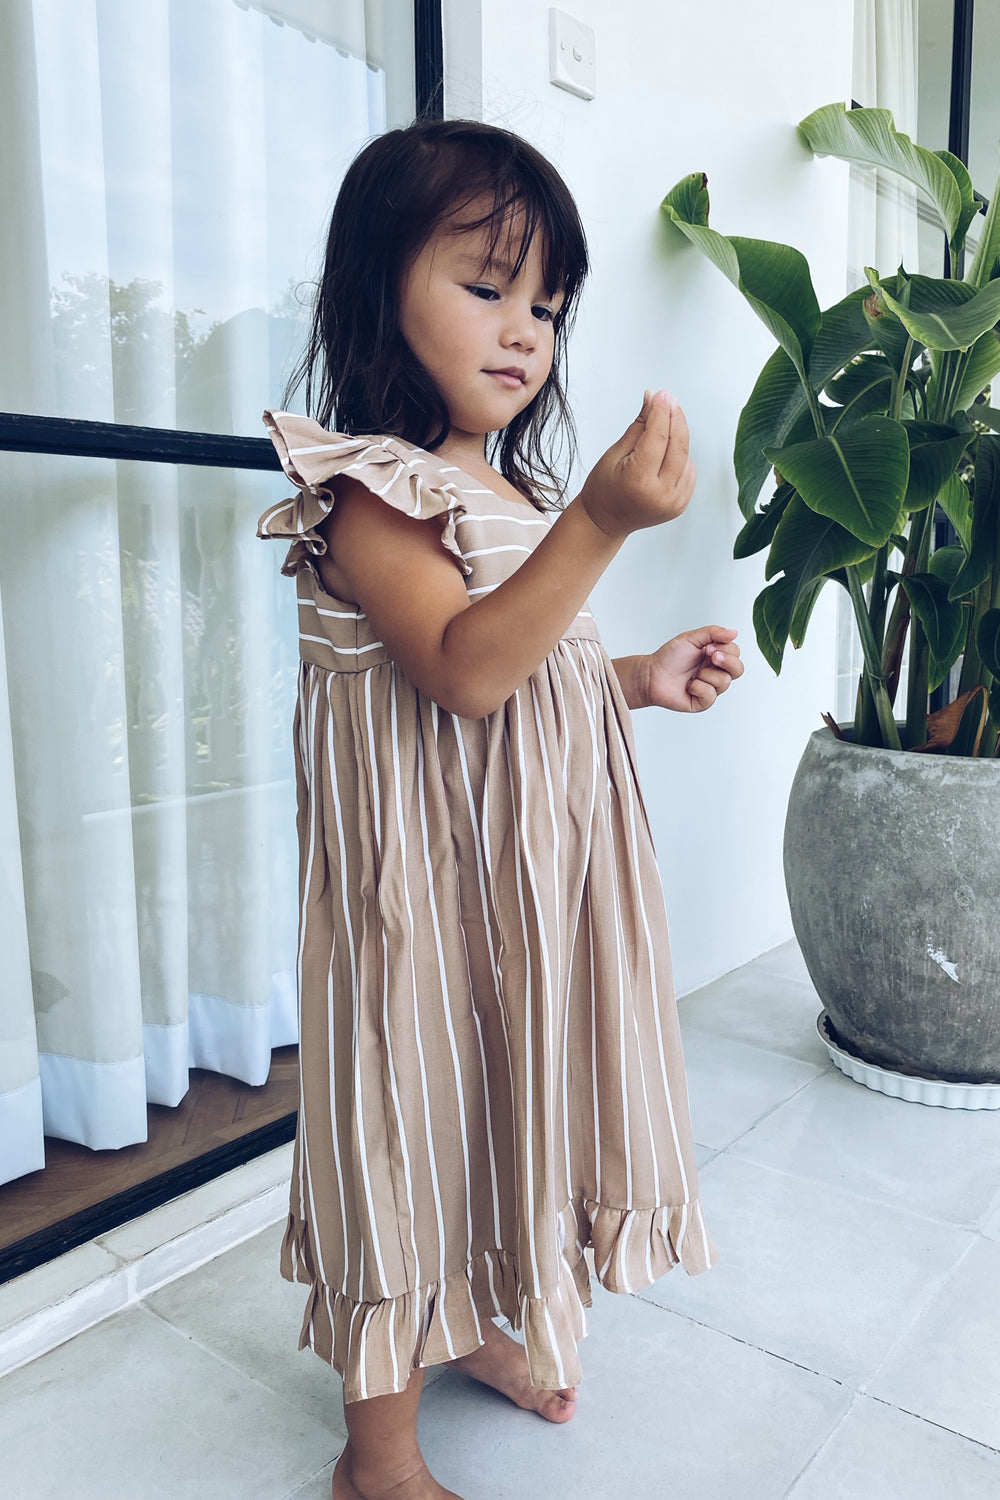 La Confection Kids - Skyler - Kids Dress in Stripe Tan and White